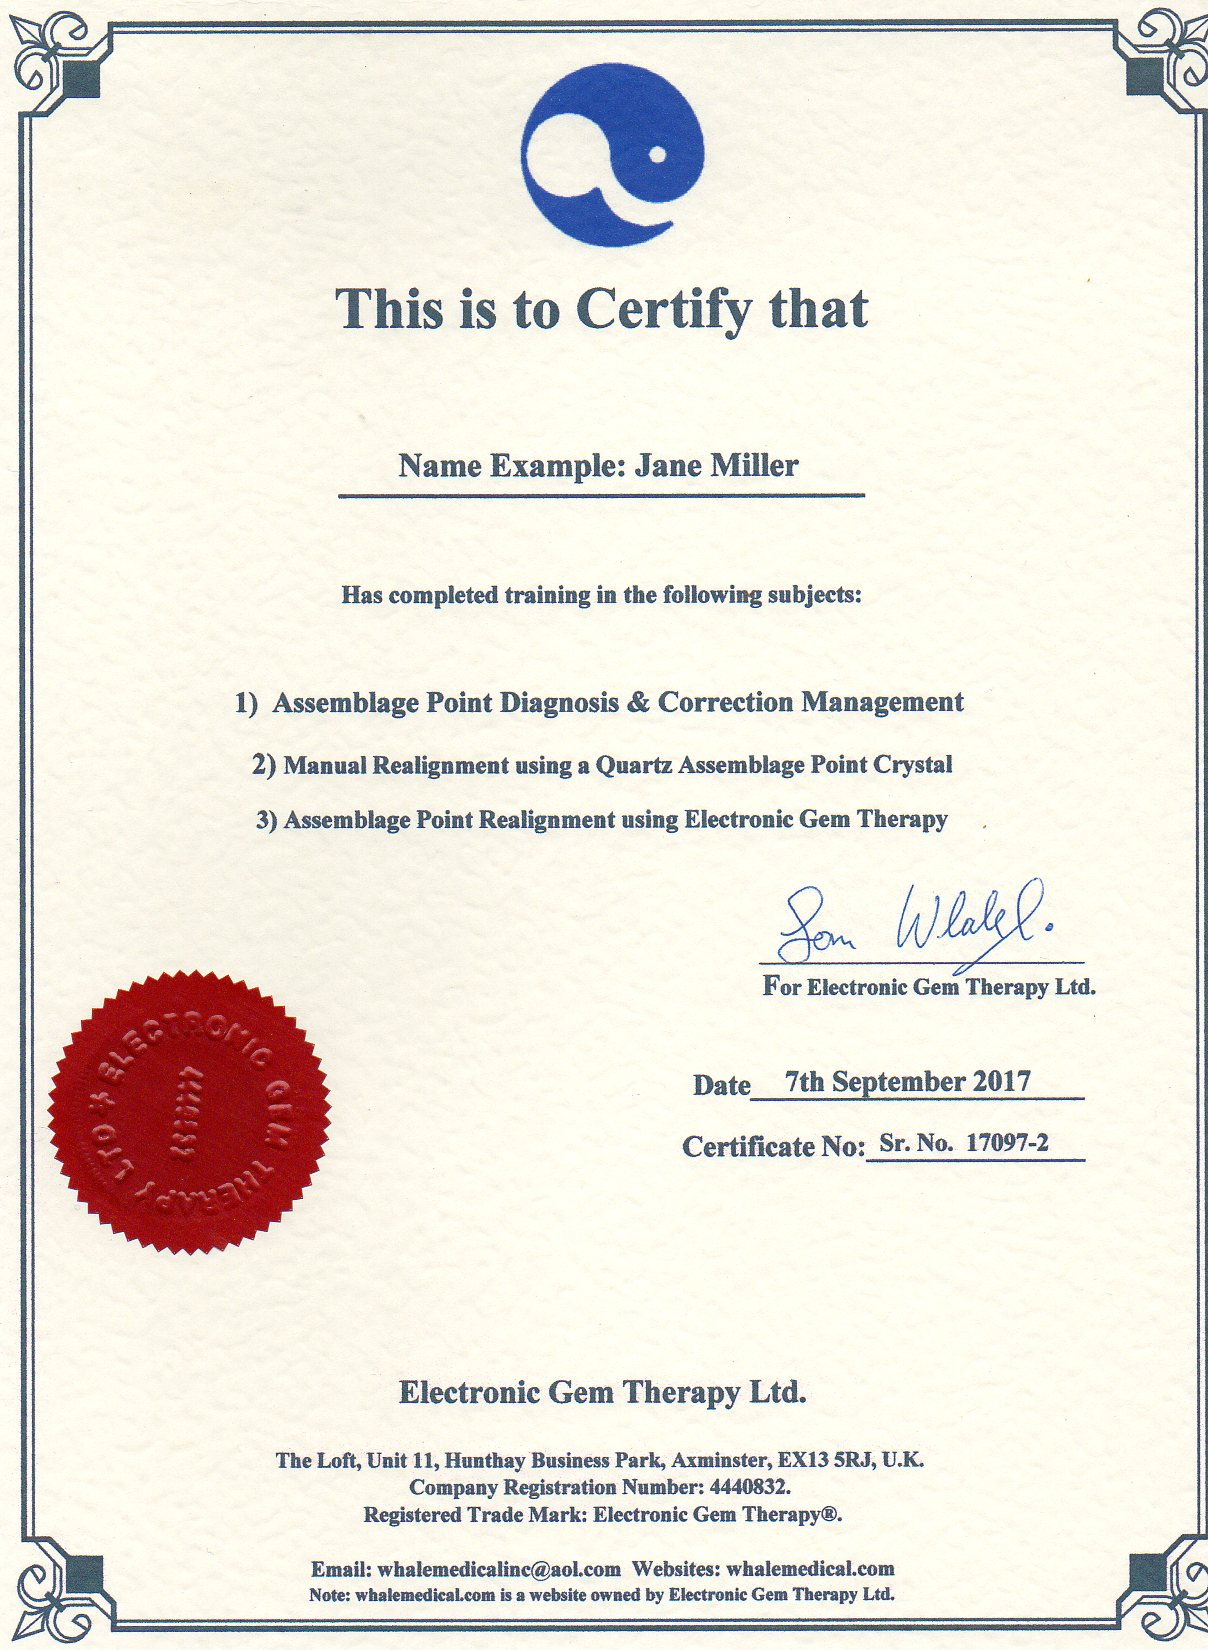 Training And Certificates For Electronic Gem Therapy Etc